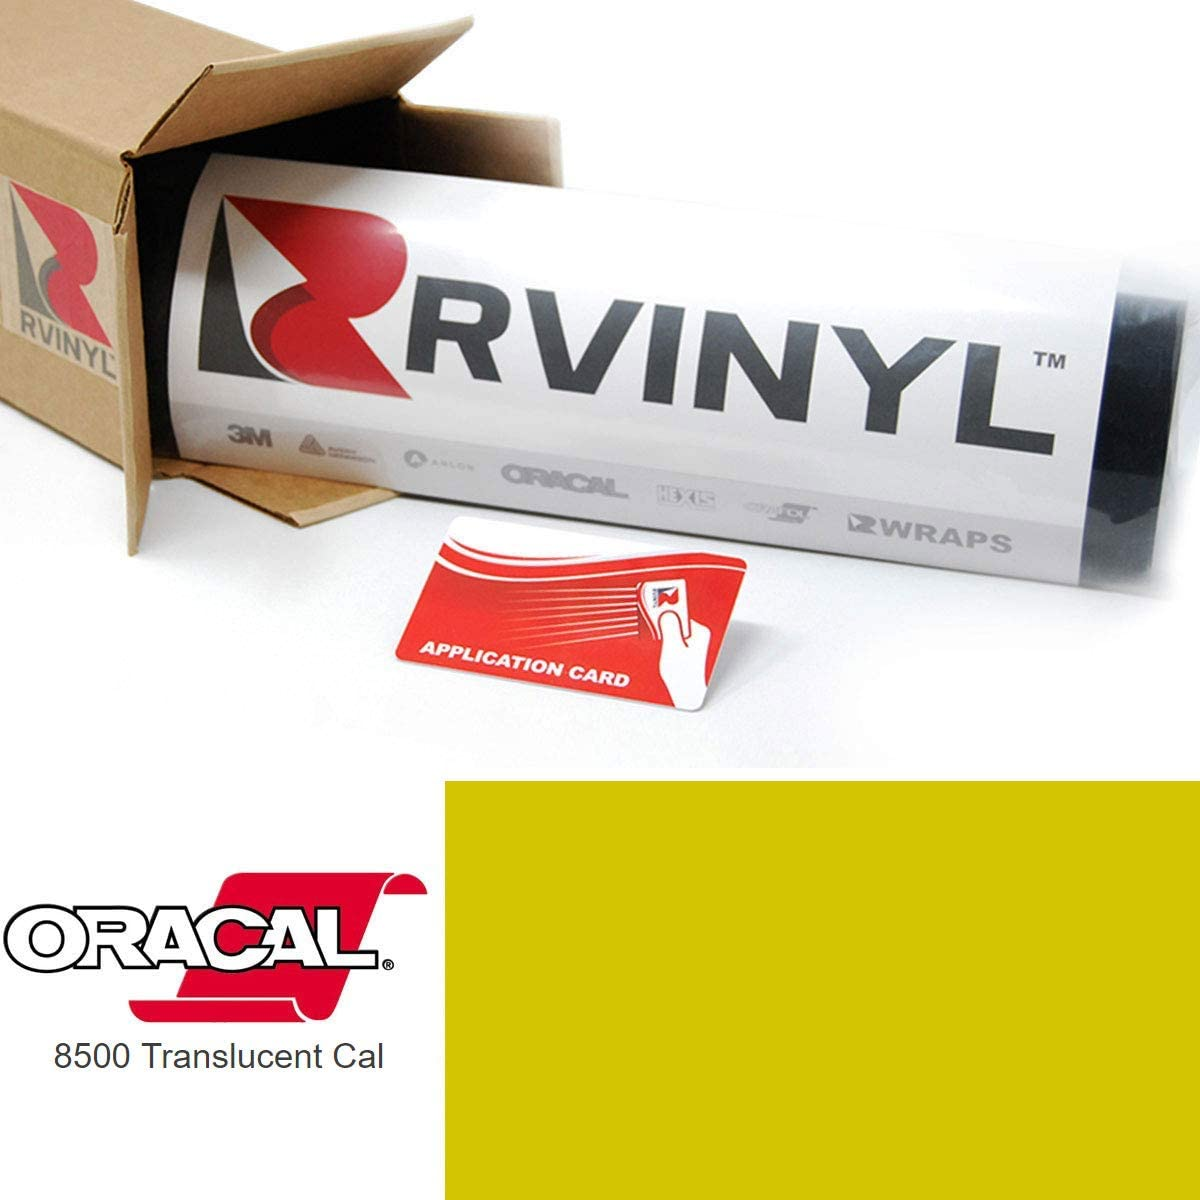 ORACAL 8500 Brimstone Yellow 025 Translucent Calendered Film 2ft x 4ft W/Application Card Vinyl Film Sheet Roll - for Cricut, Silhouette Cameo, Craft and Sign Cutters